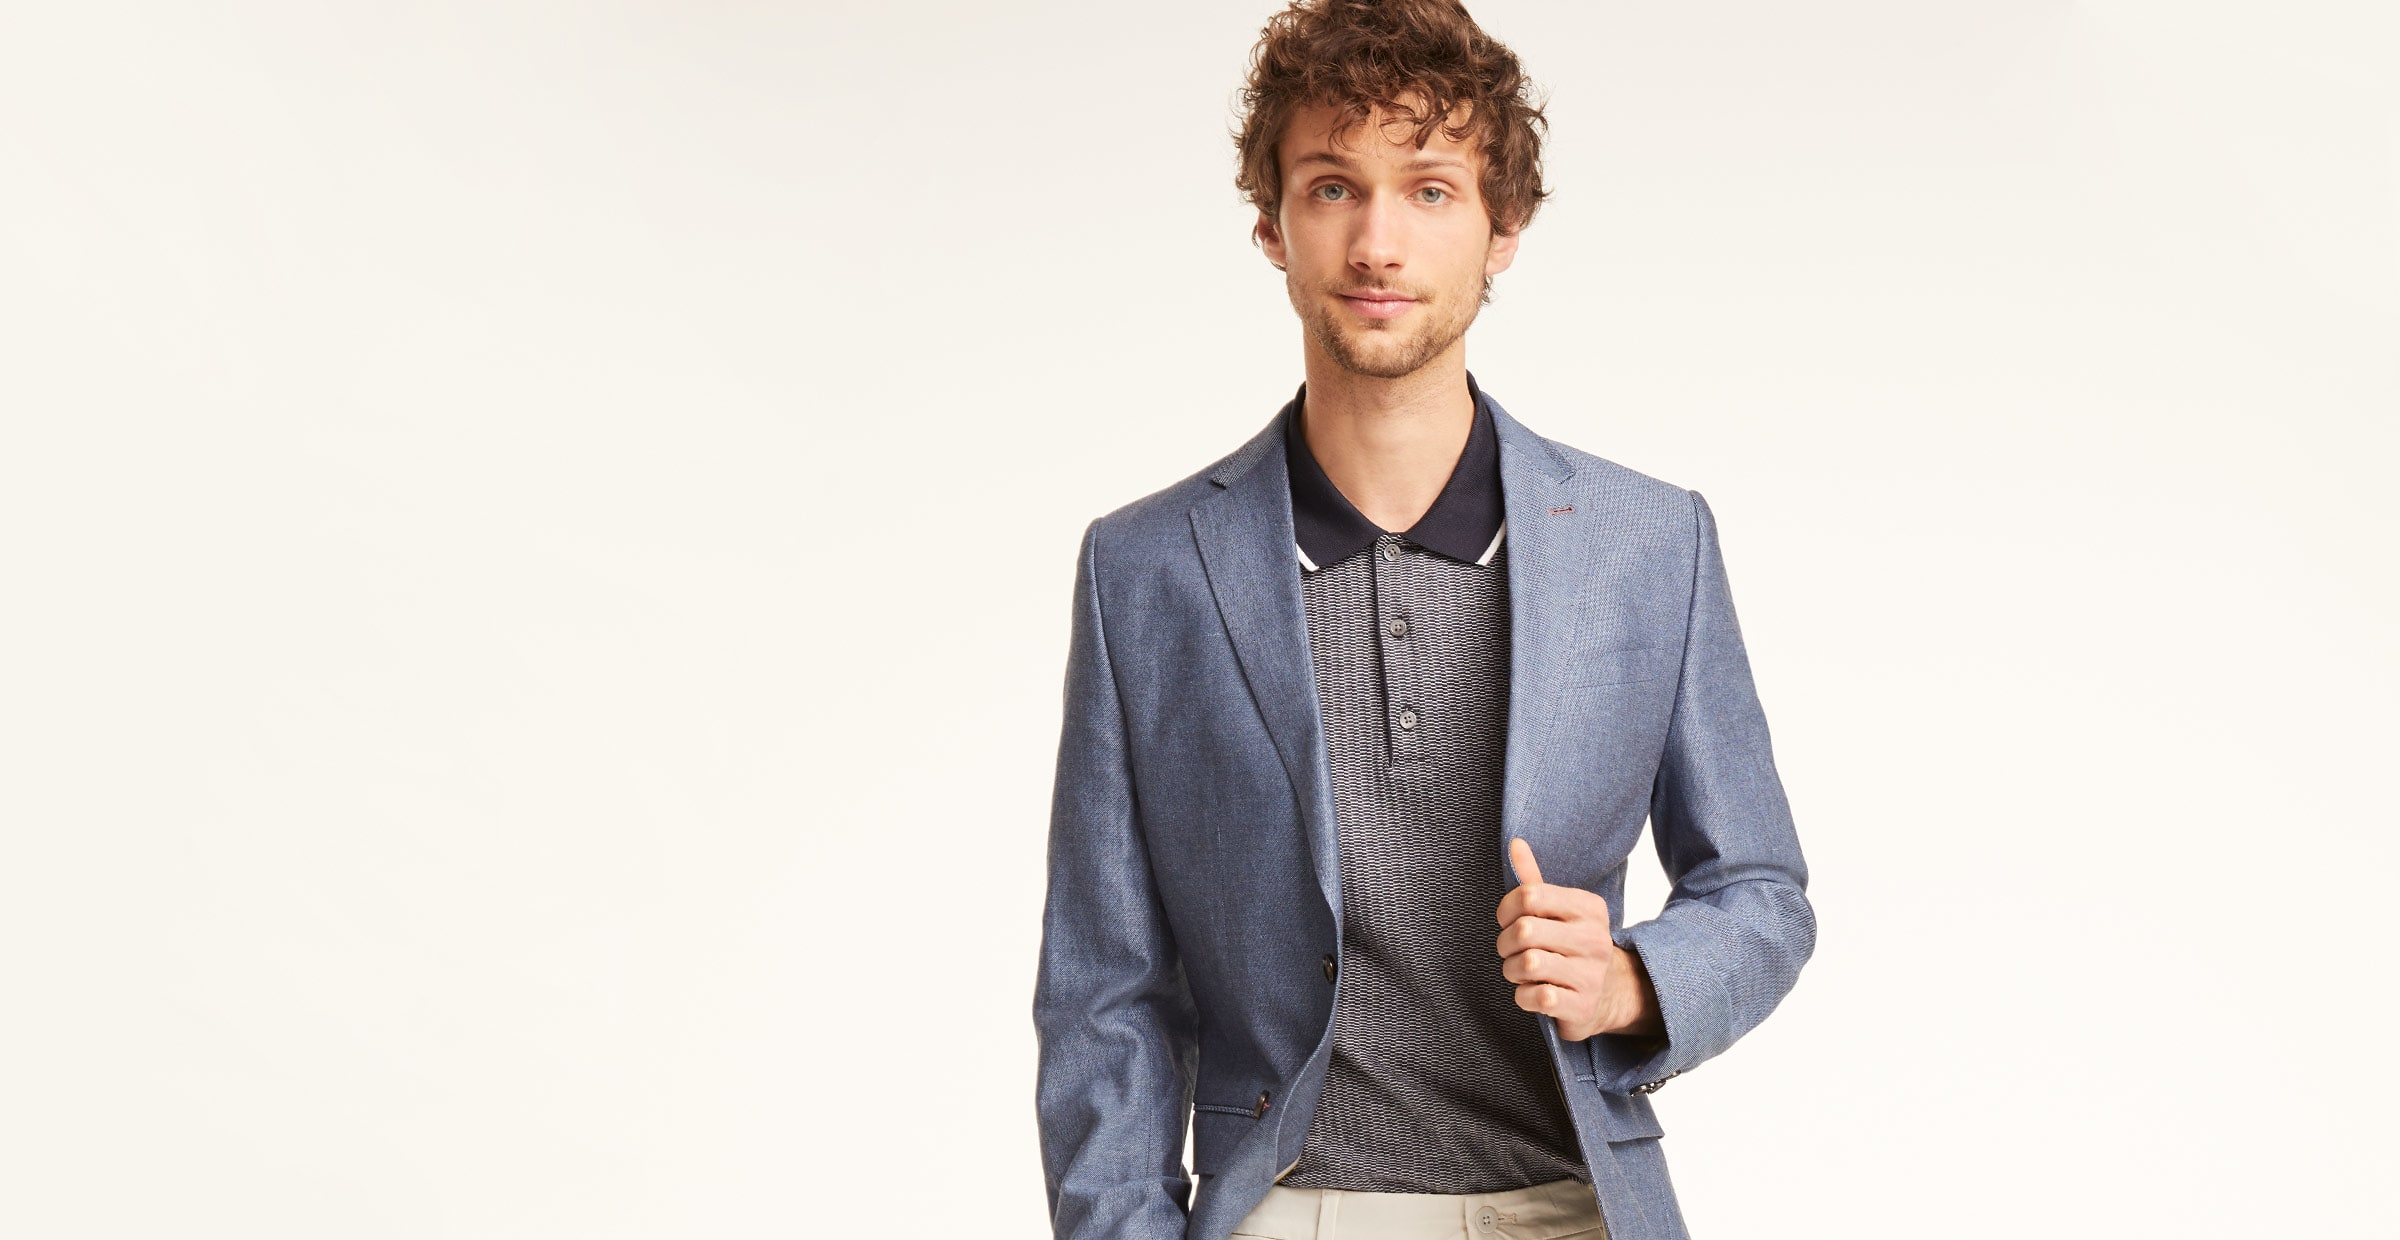 A Man in a preppy outfit: Blazer and button down t-shirt